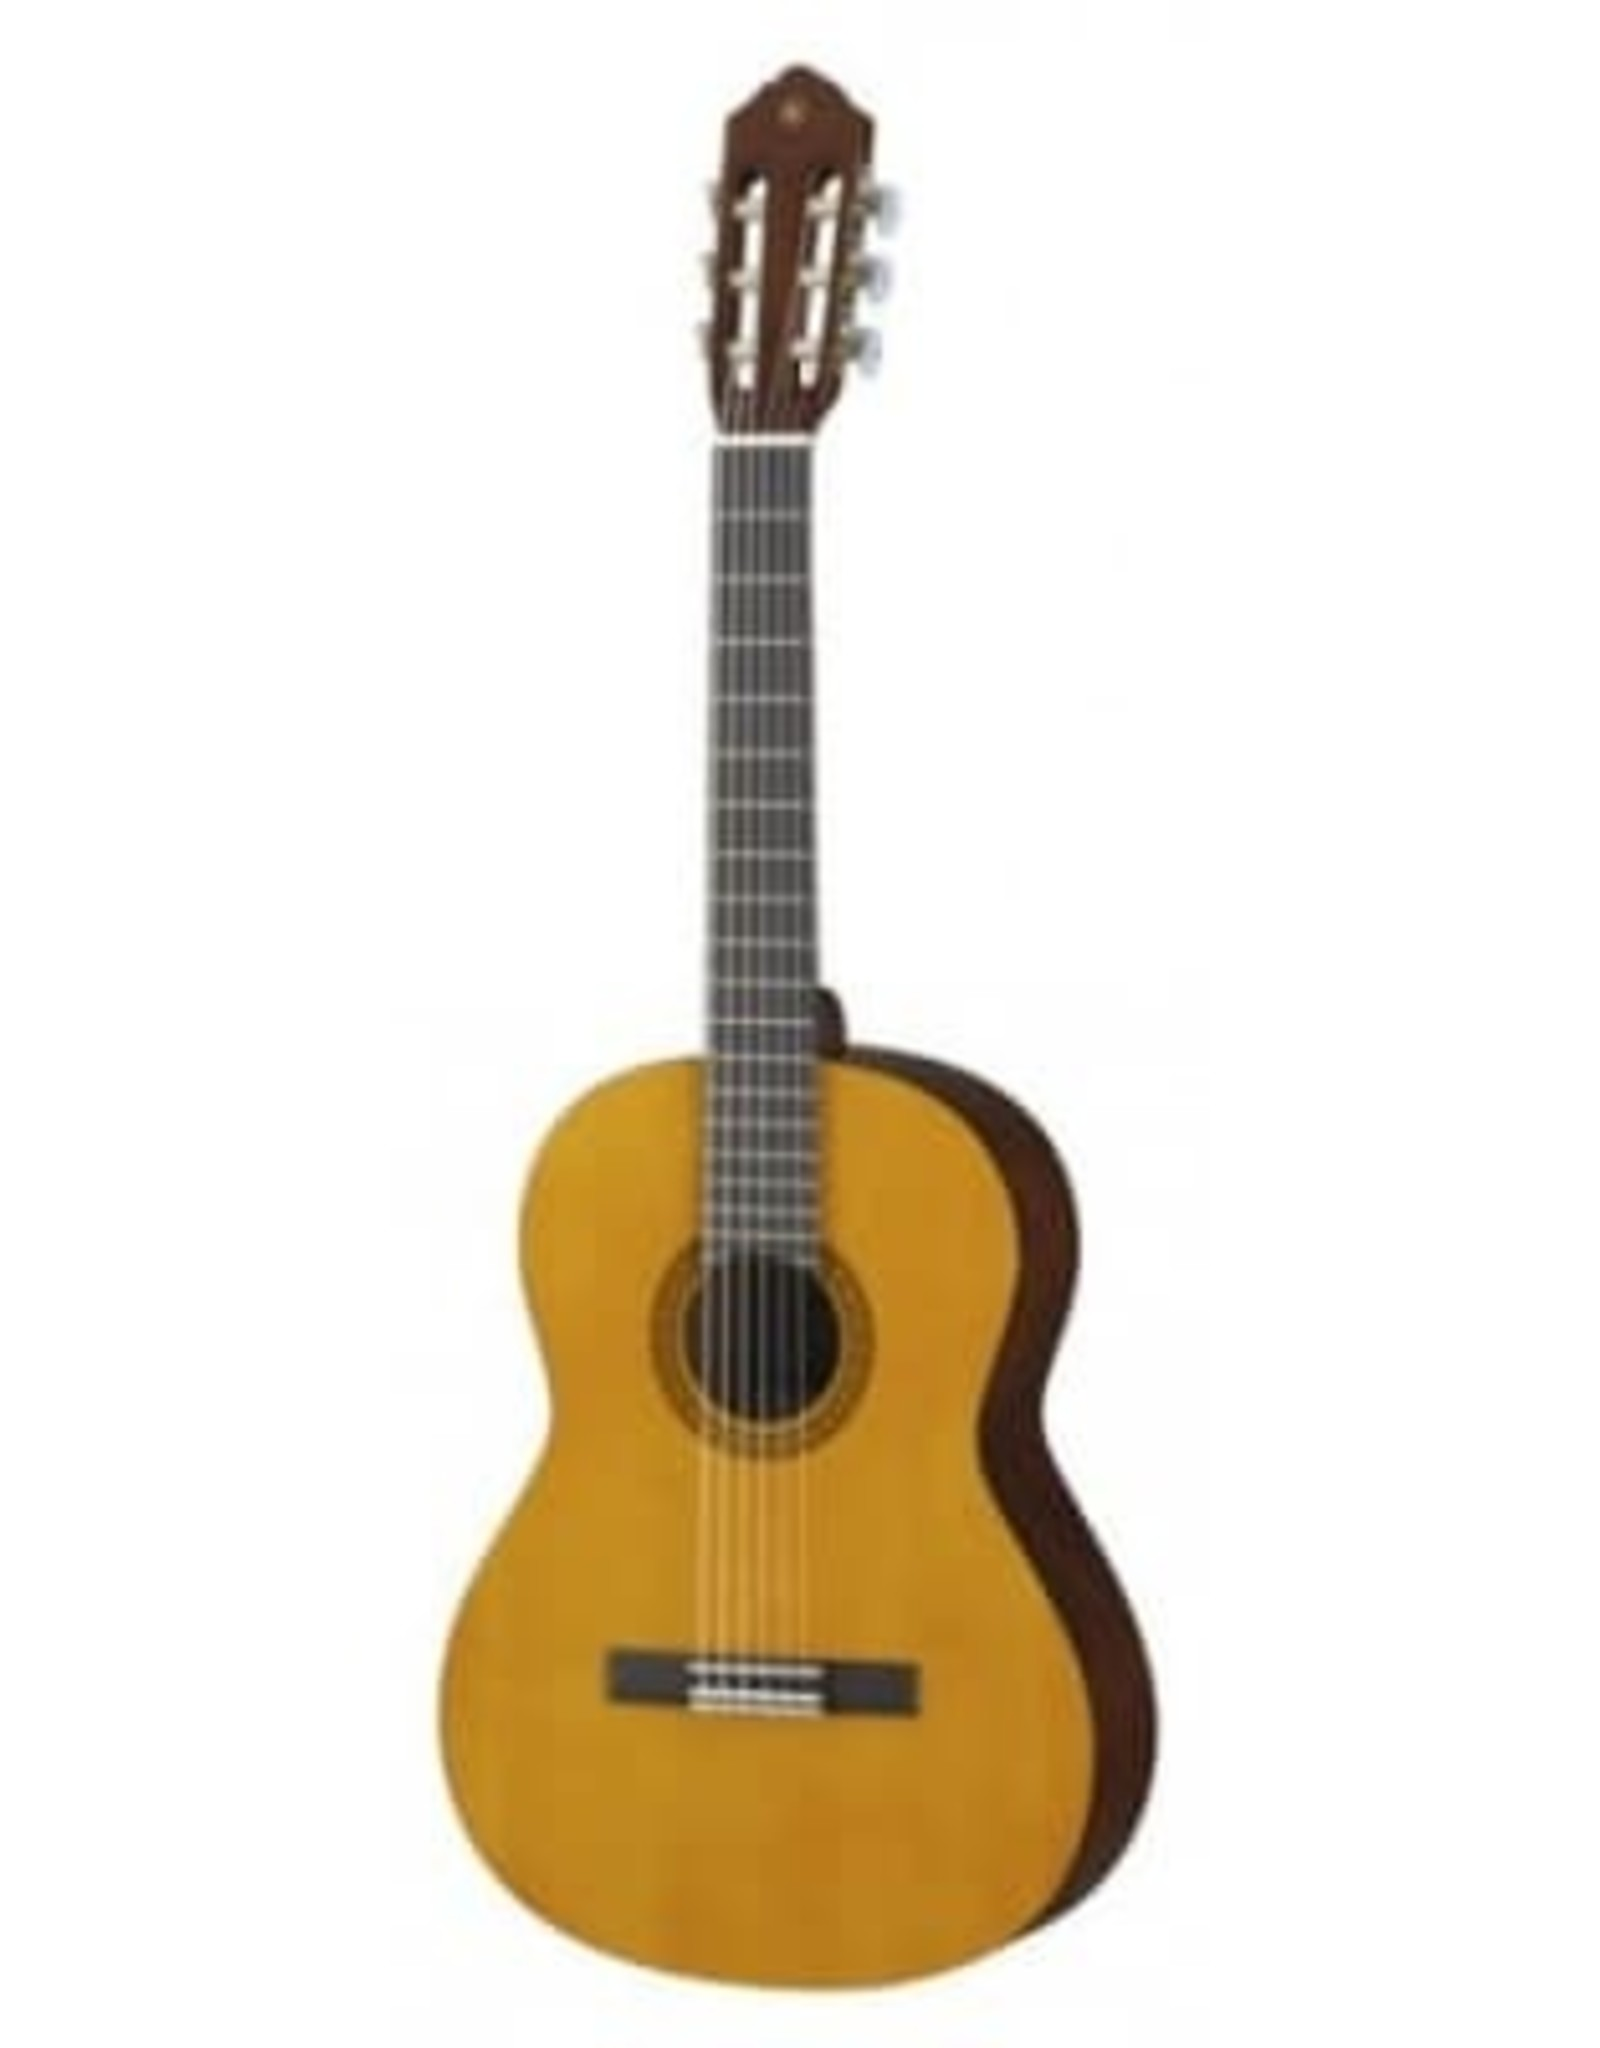 Yamaha 3/4 Scale Spruce Top, Meranti back and sides; Natural